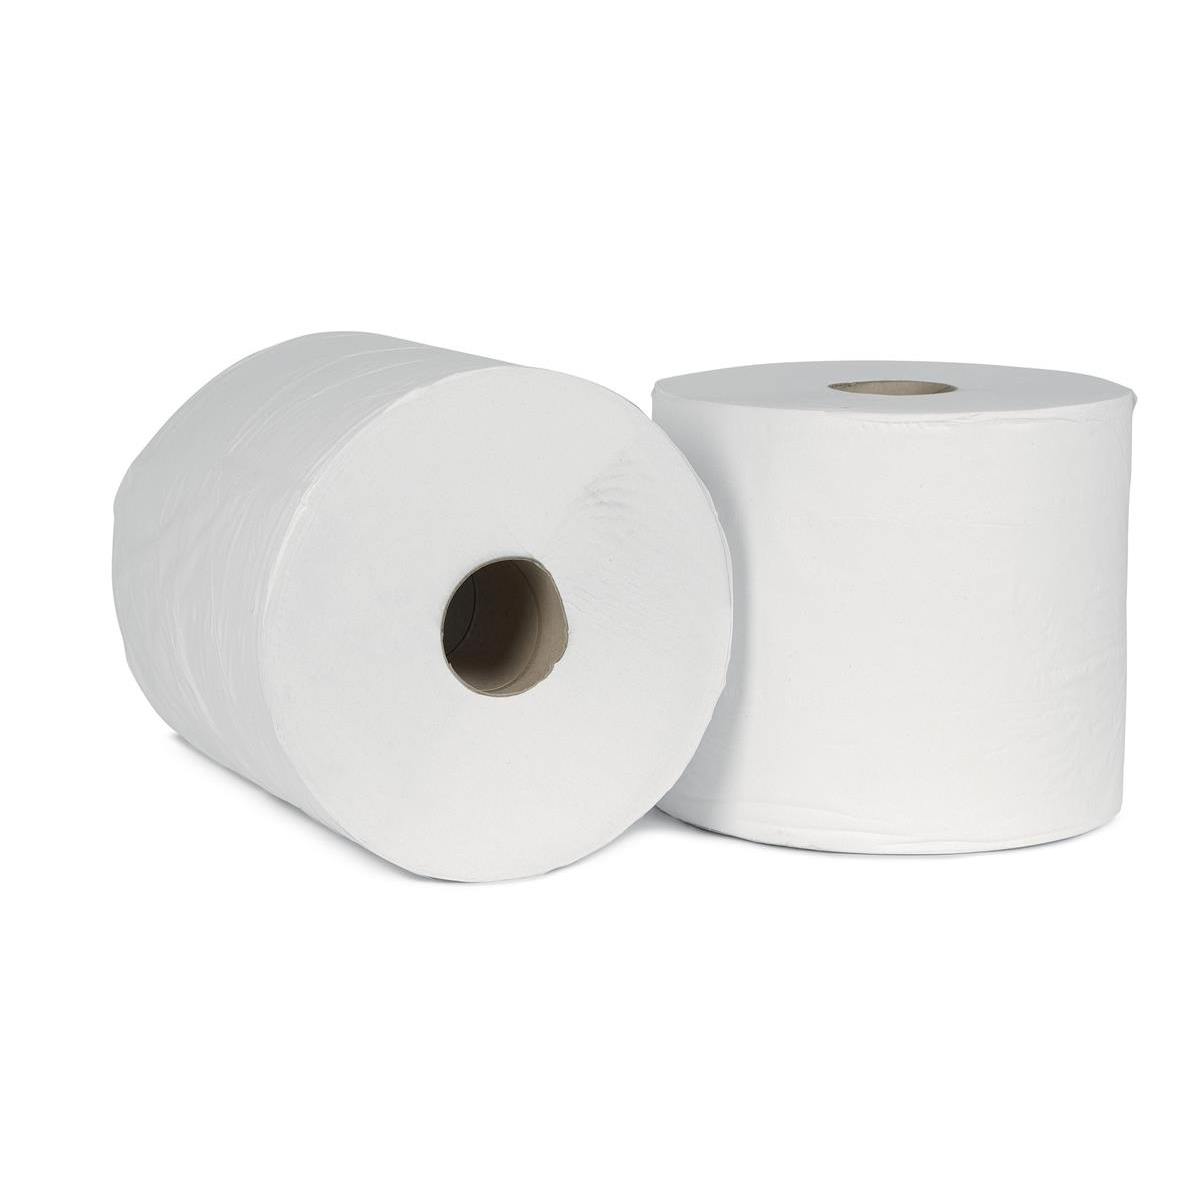 5 Star Facilities Giant Wiper Roll 2-ply Perforated Sheet 370x370mm 40gsm 1000 Sheets White Pack 2